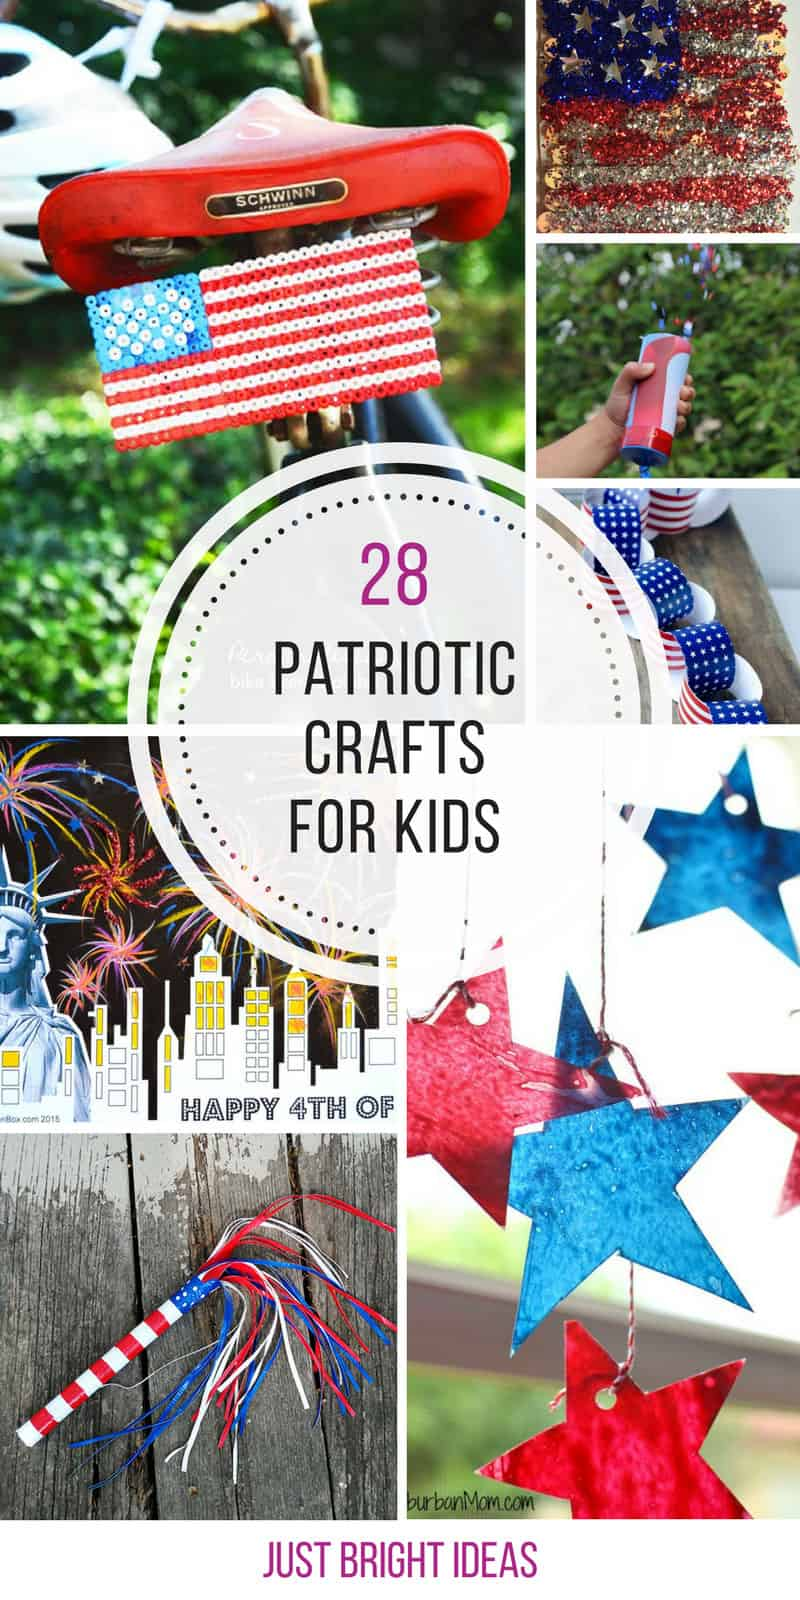 Loving these Independence Day crafts for kids! Thanks for sharing!